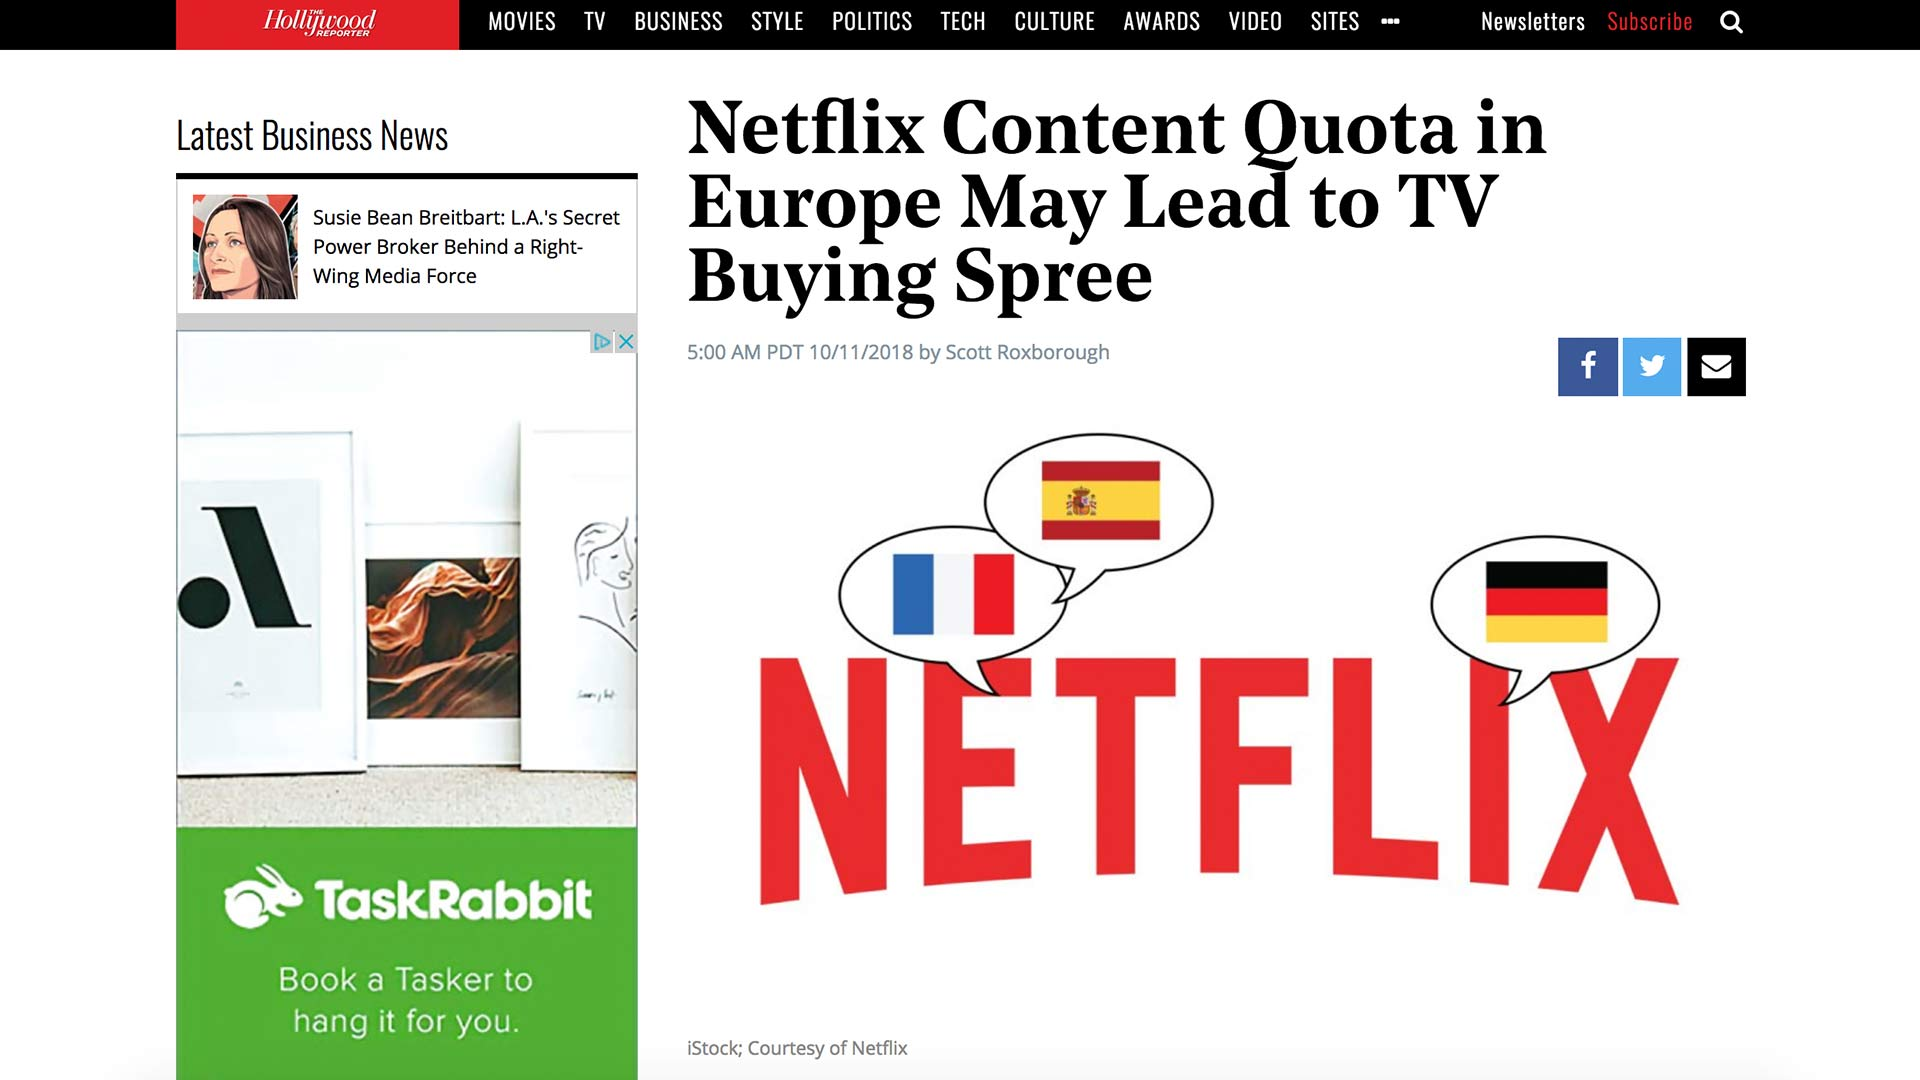 Fairness Rocks News Netflix Content Quota in Europe May Lead to TV Buying Spree